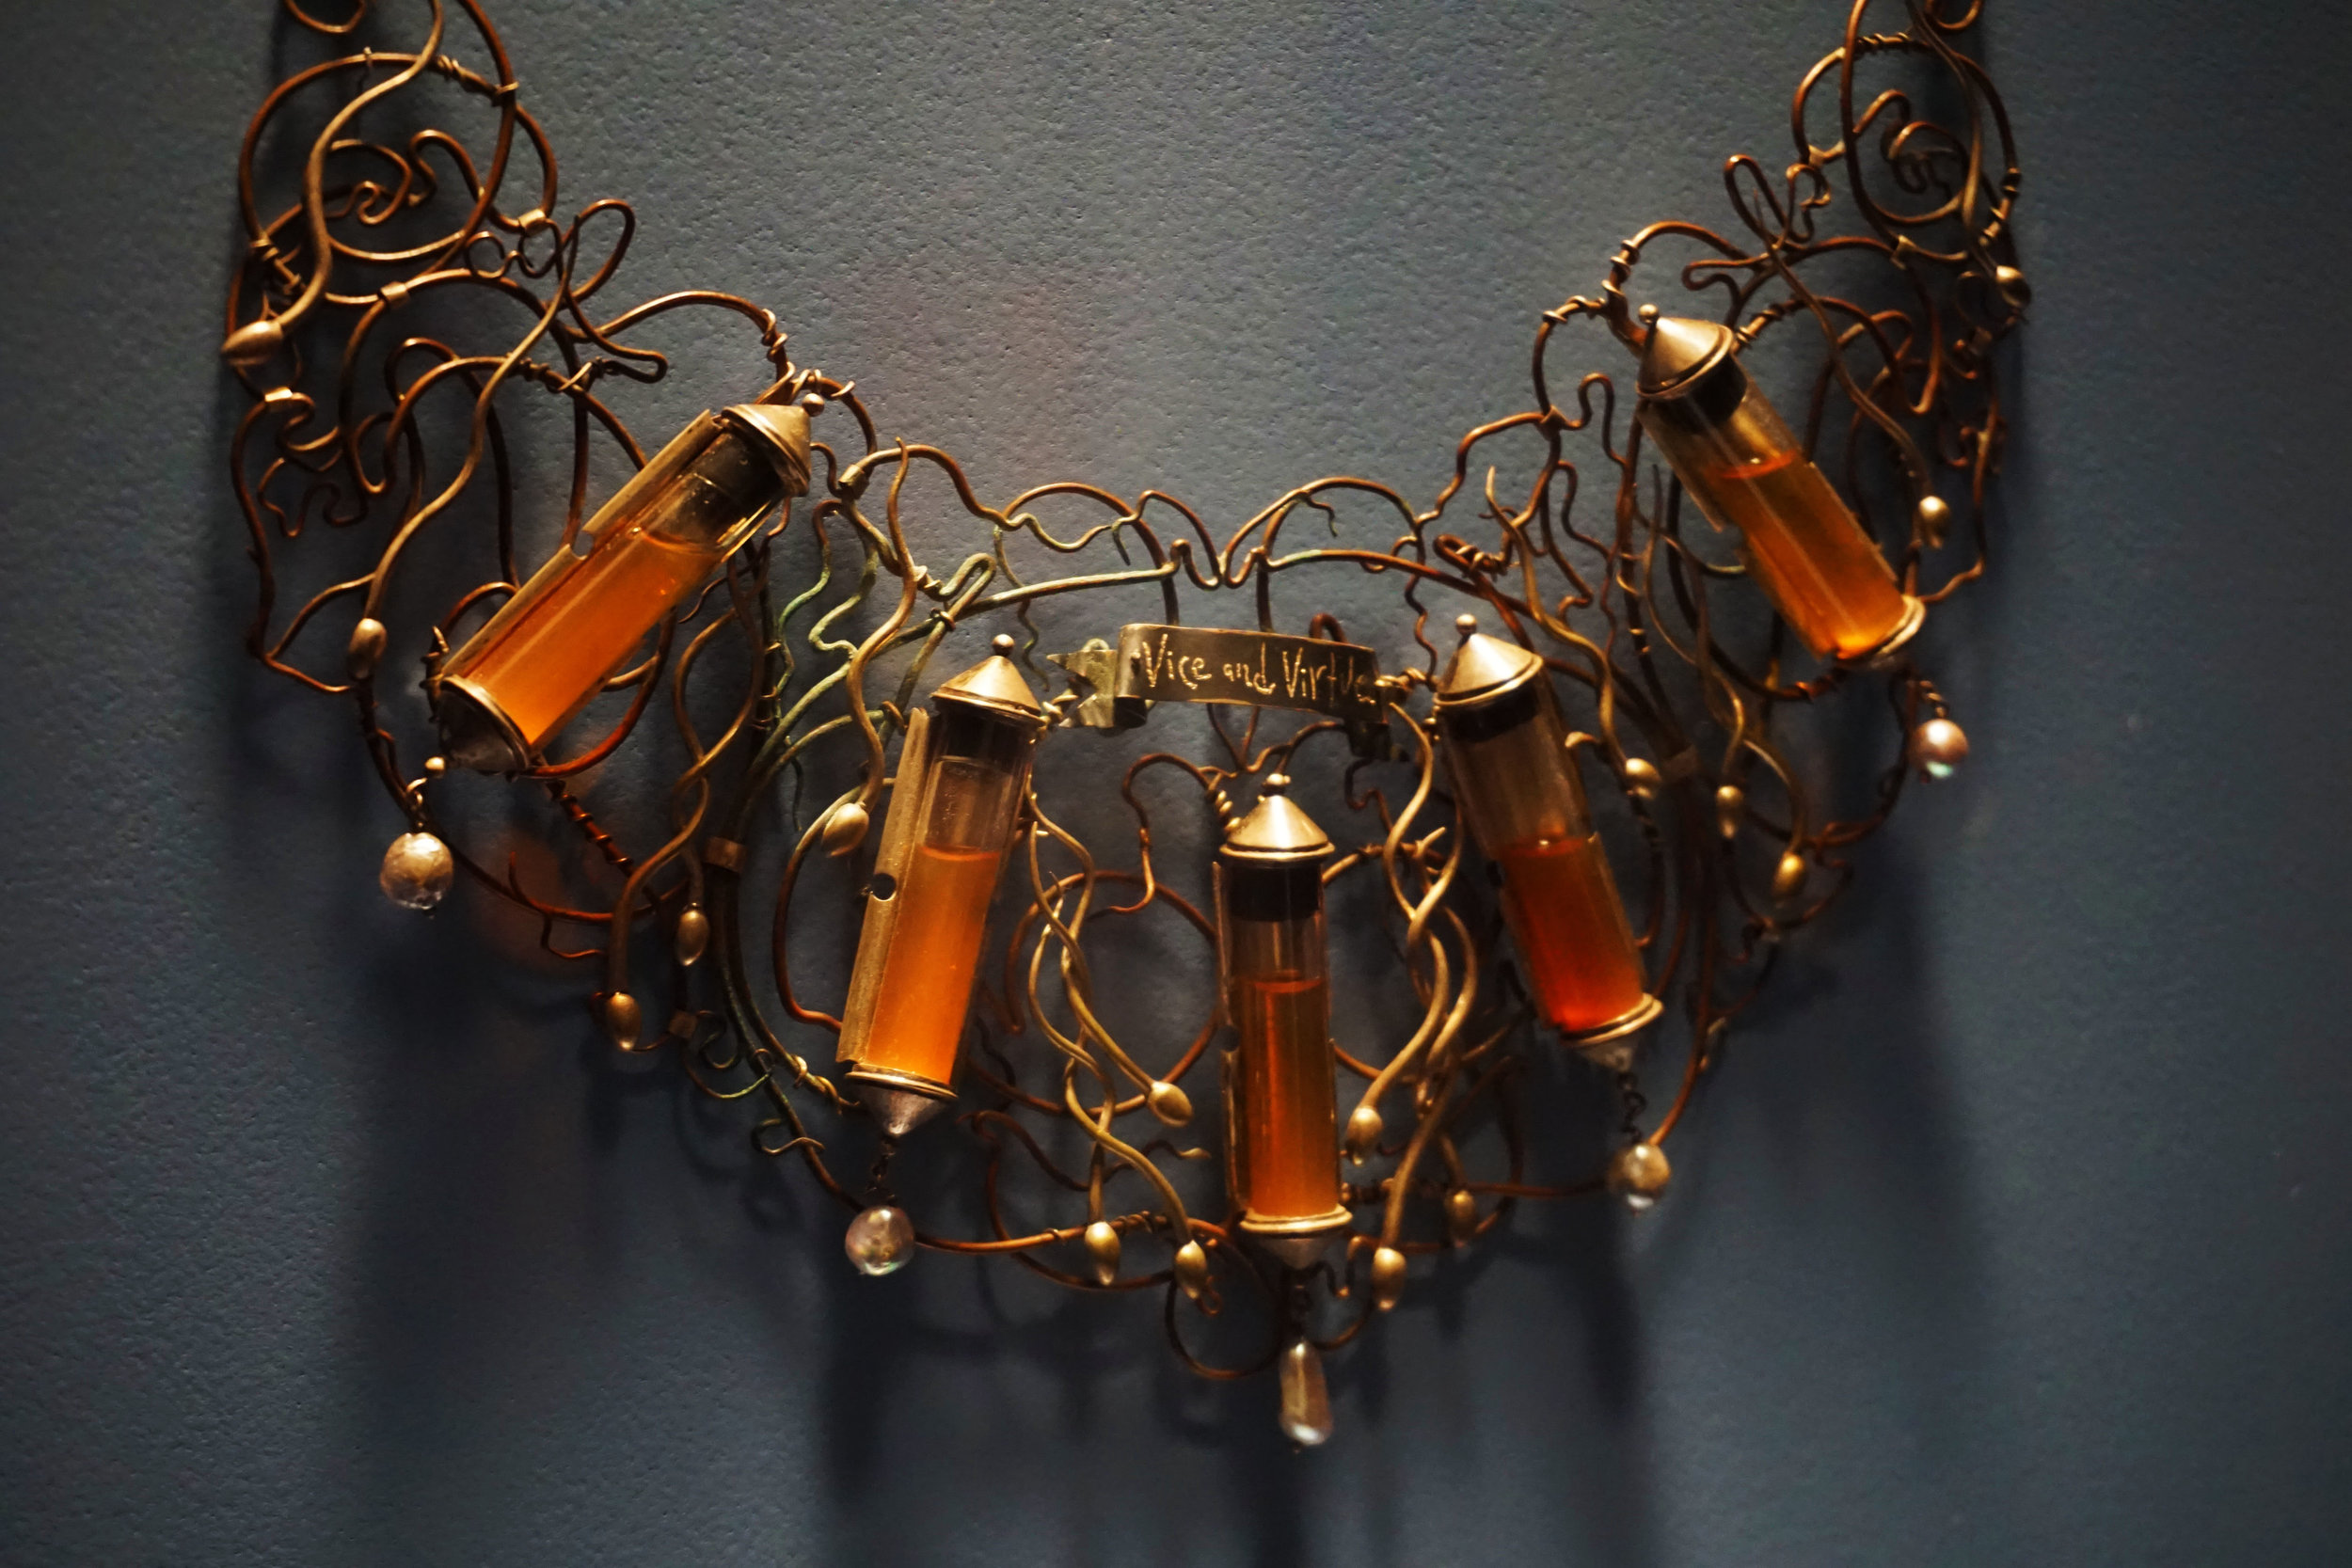 A necklace containing human sperm, a gift of the artist (no word on who the sperm belongs to)